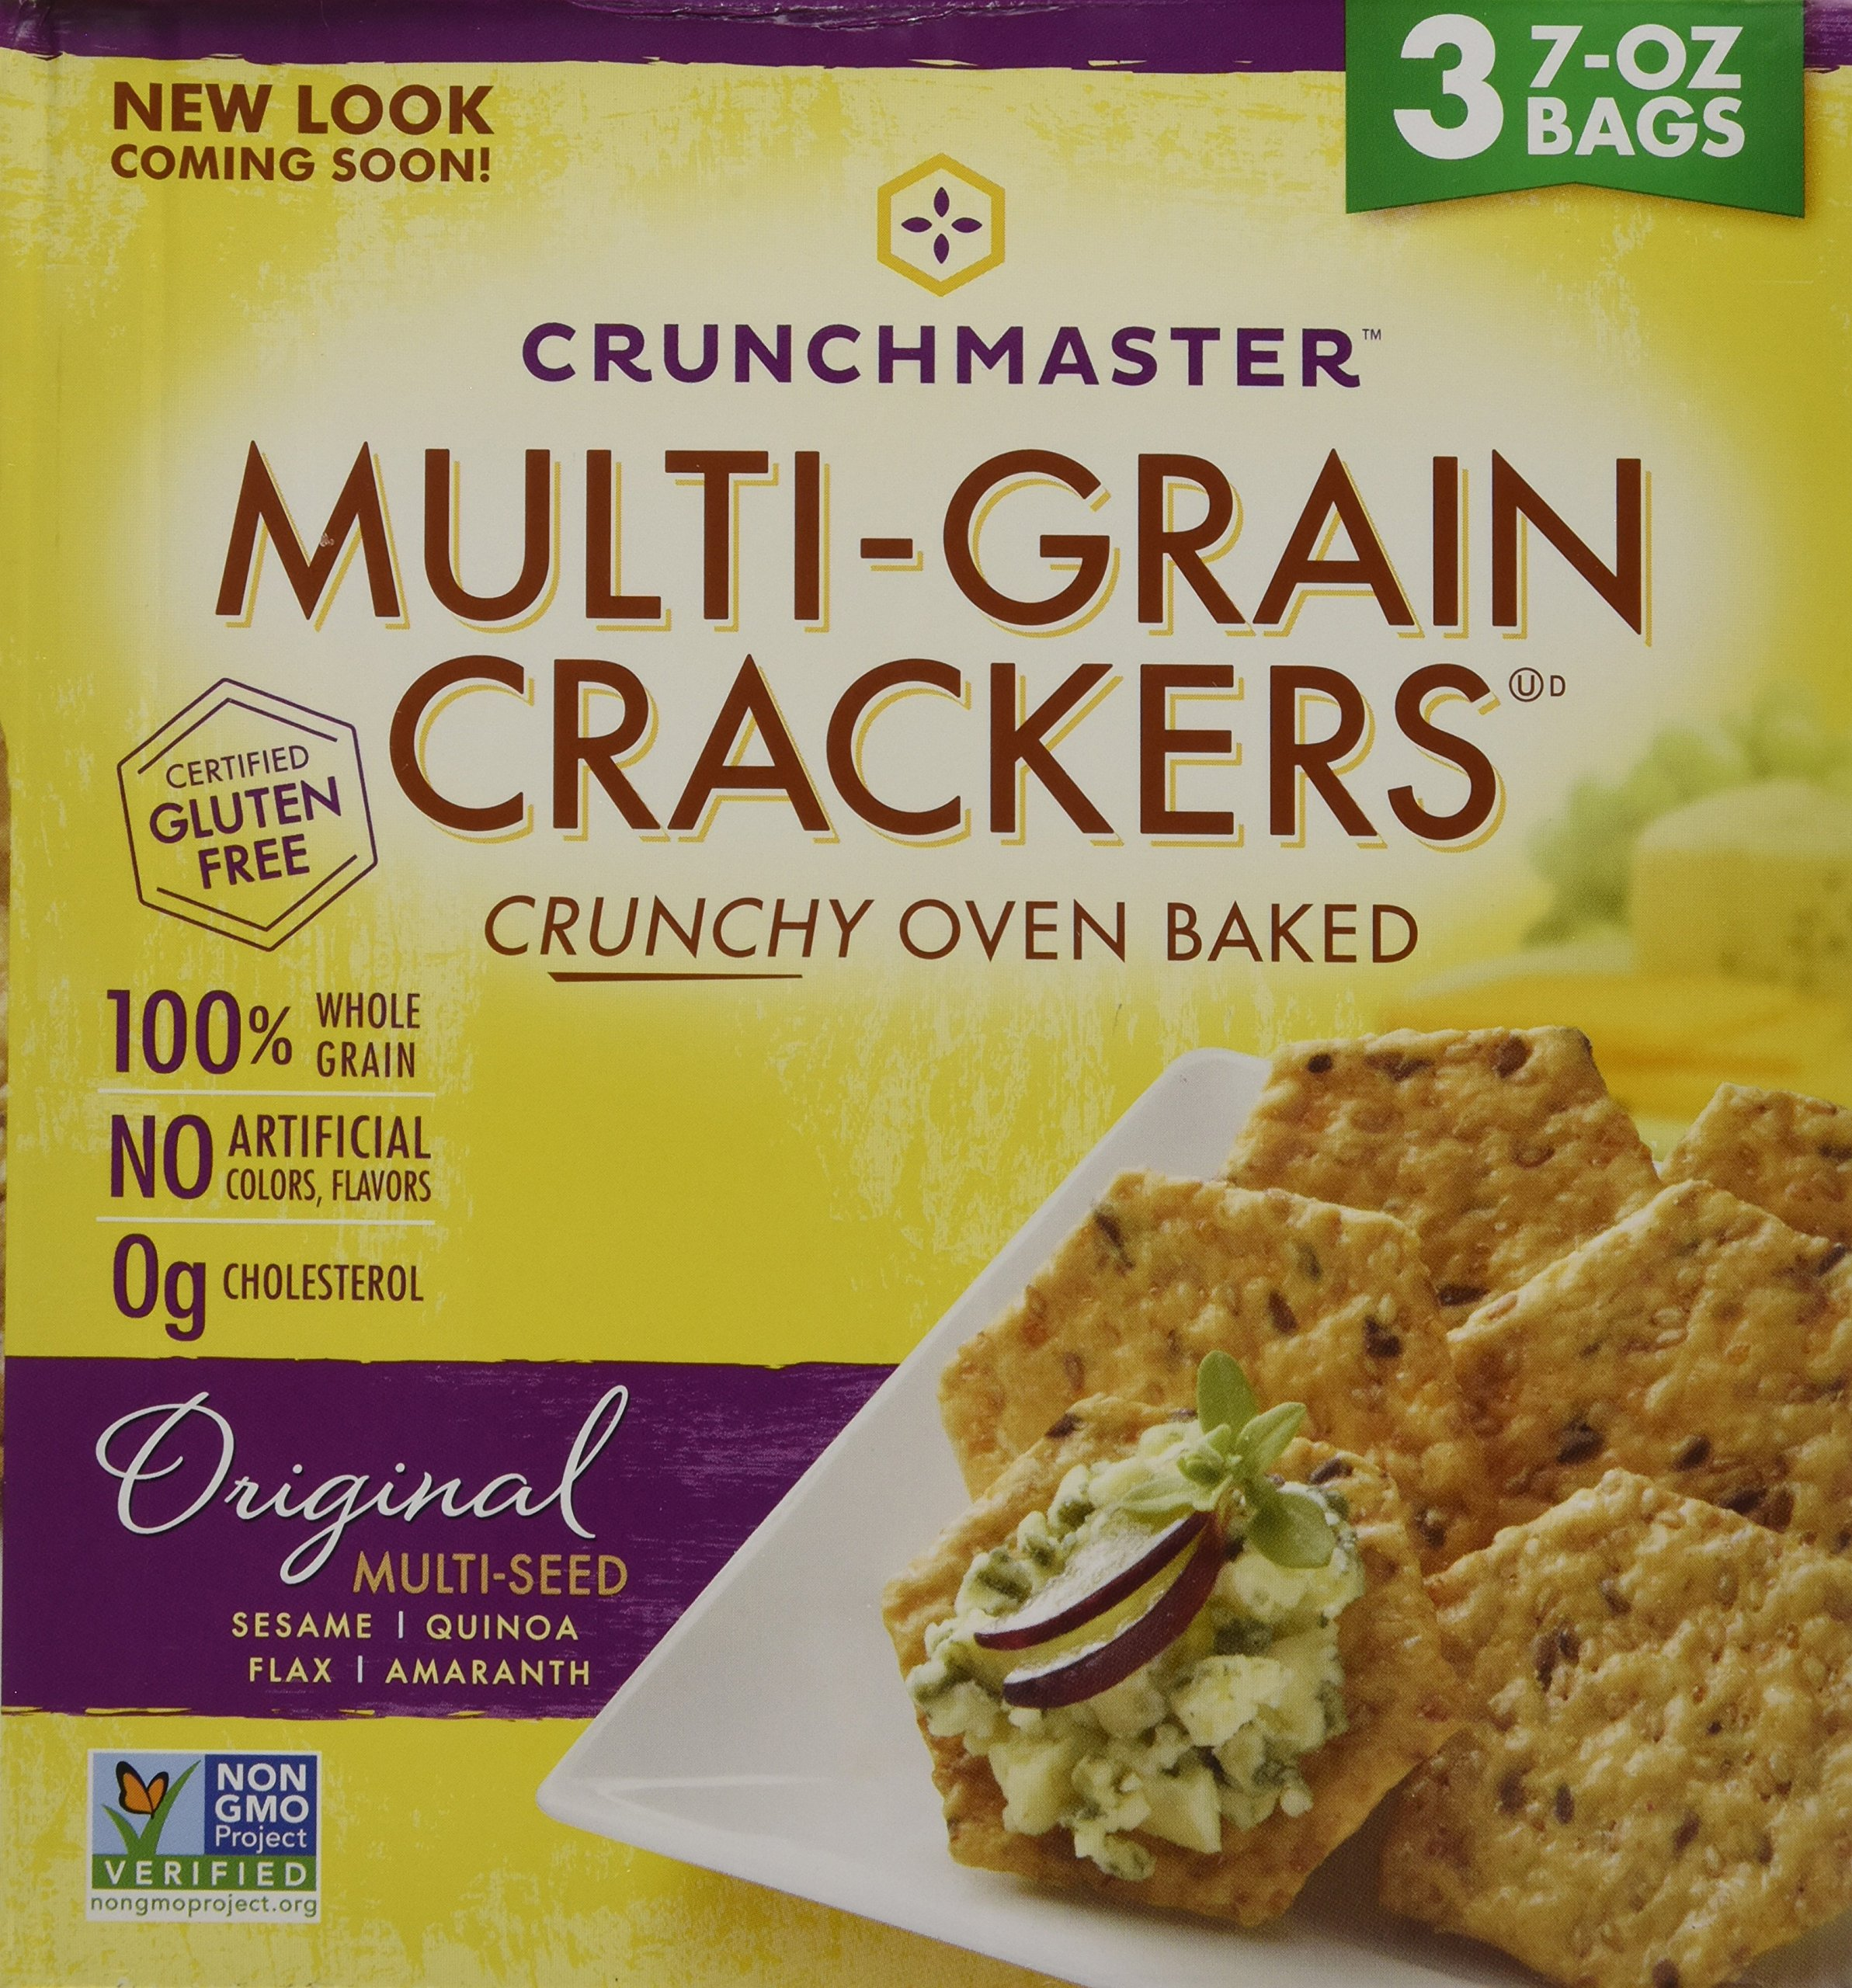 Crunchmaster Multi-Grain Crackers, 3 pk./7 oz. ( 1 BOX ) by Unknown (Image #7)